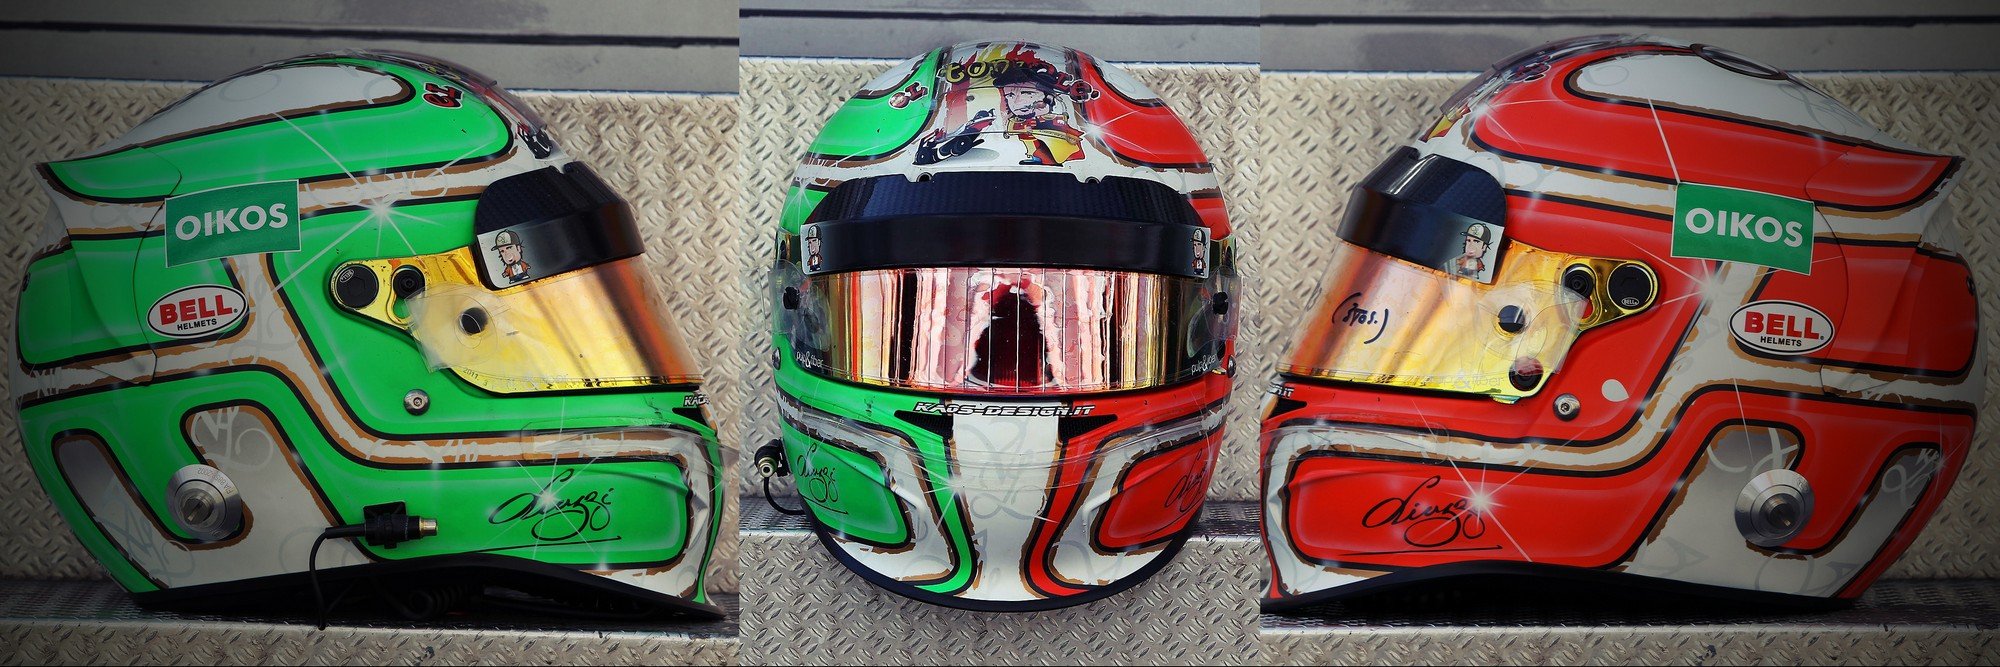 Шлем Витантонио Лиуцци на Гран-При Испании 2011 года | 2011 Spanish Grand Prix helmet of Vitantonio Liuzzi